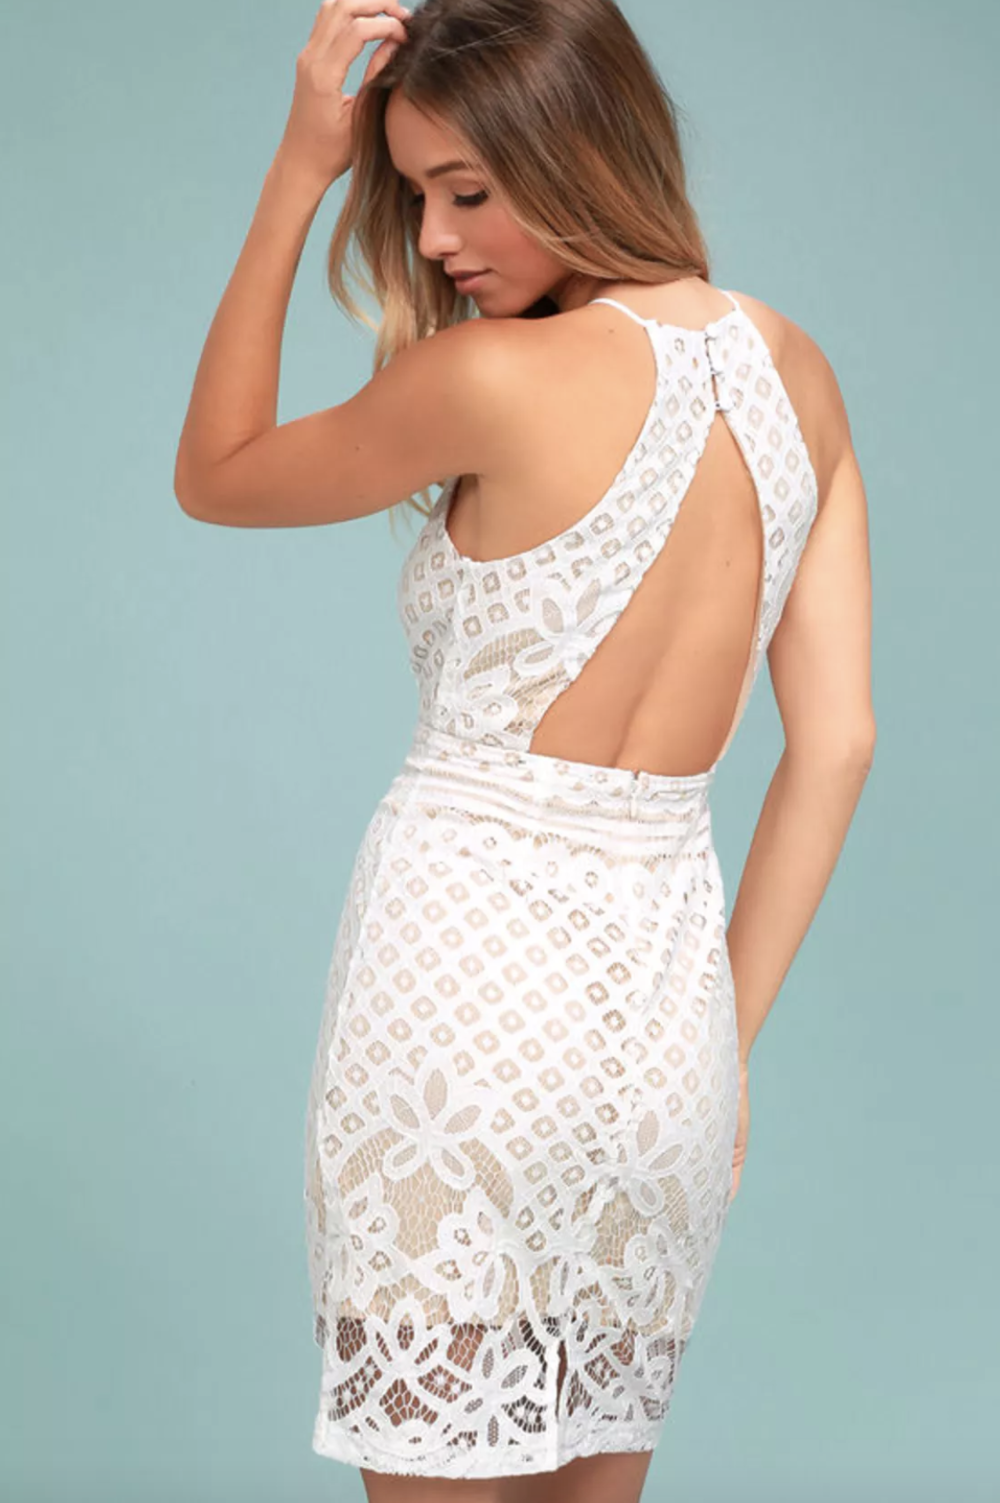 STEAL A KISS WHITE LACE DRESS | Cocktail dress, White dress, lace dress, nude and lace, bachelorette party dress, bridal shower dress, rehearsal dinner dress | www.thoughtfully-thrifted.com